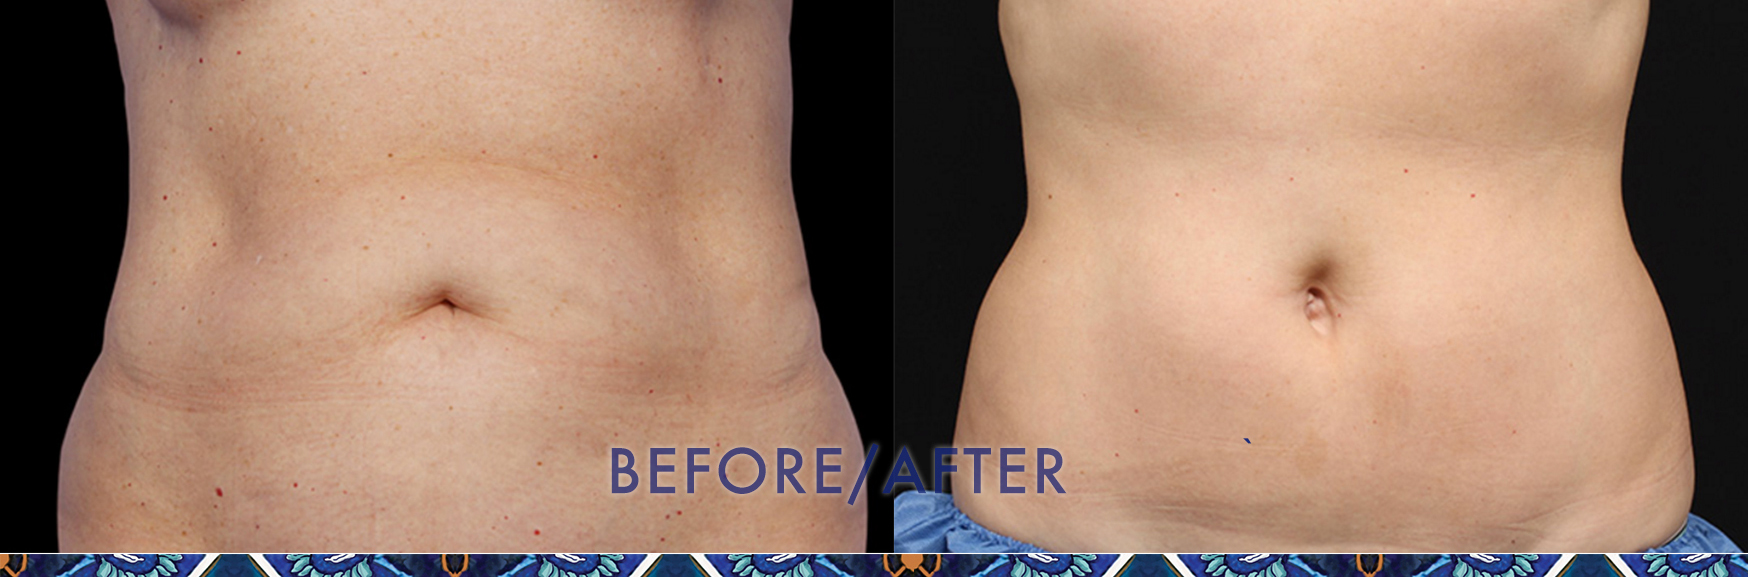 Lose belly fat with CoolSculpting